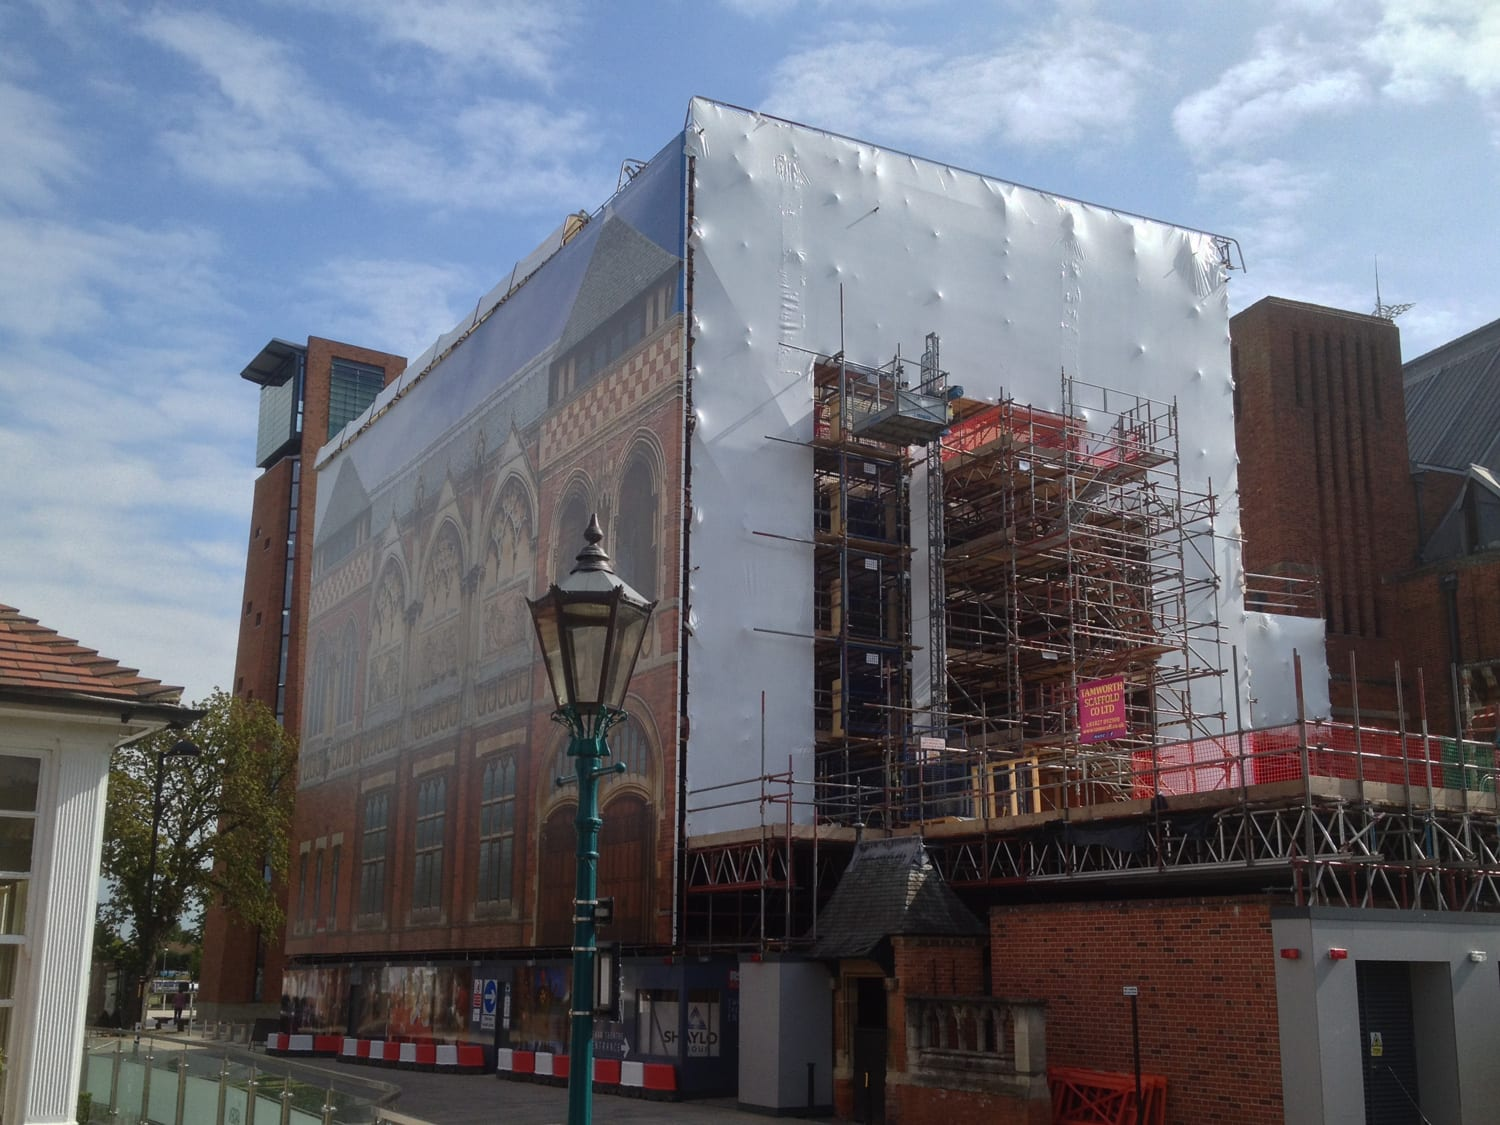 Royal-Shakespeare-Company-Swan-Theatre-Wing-Shrink-Wrap